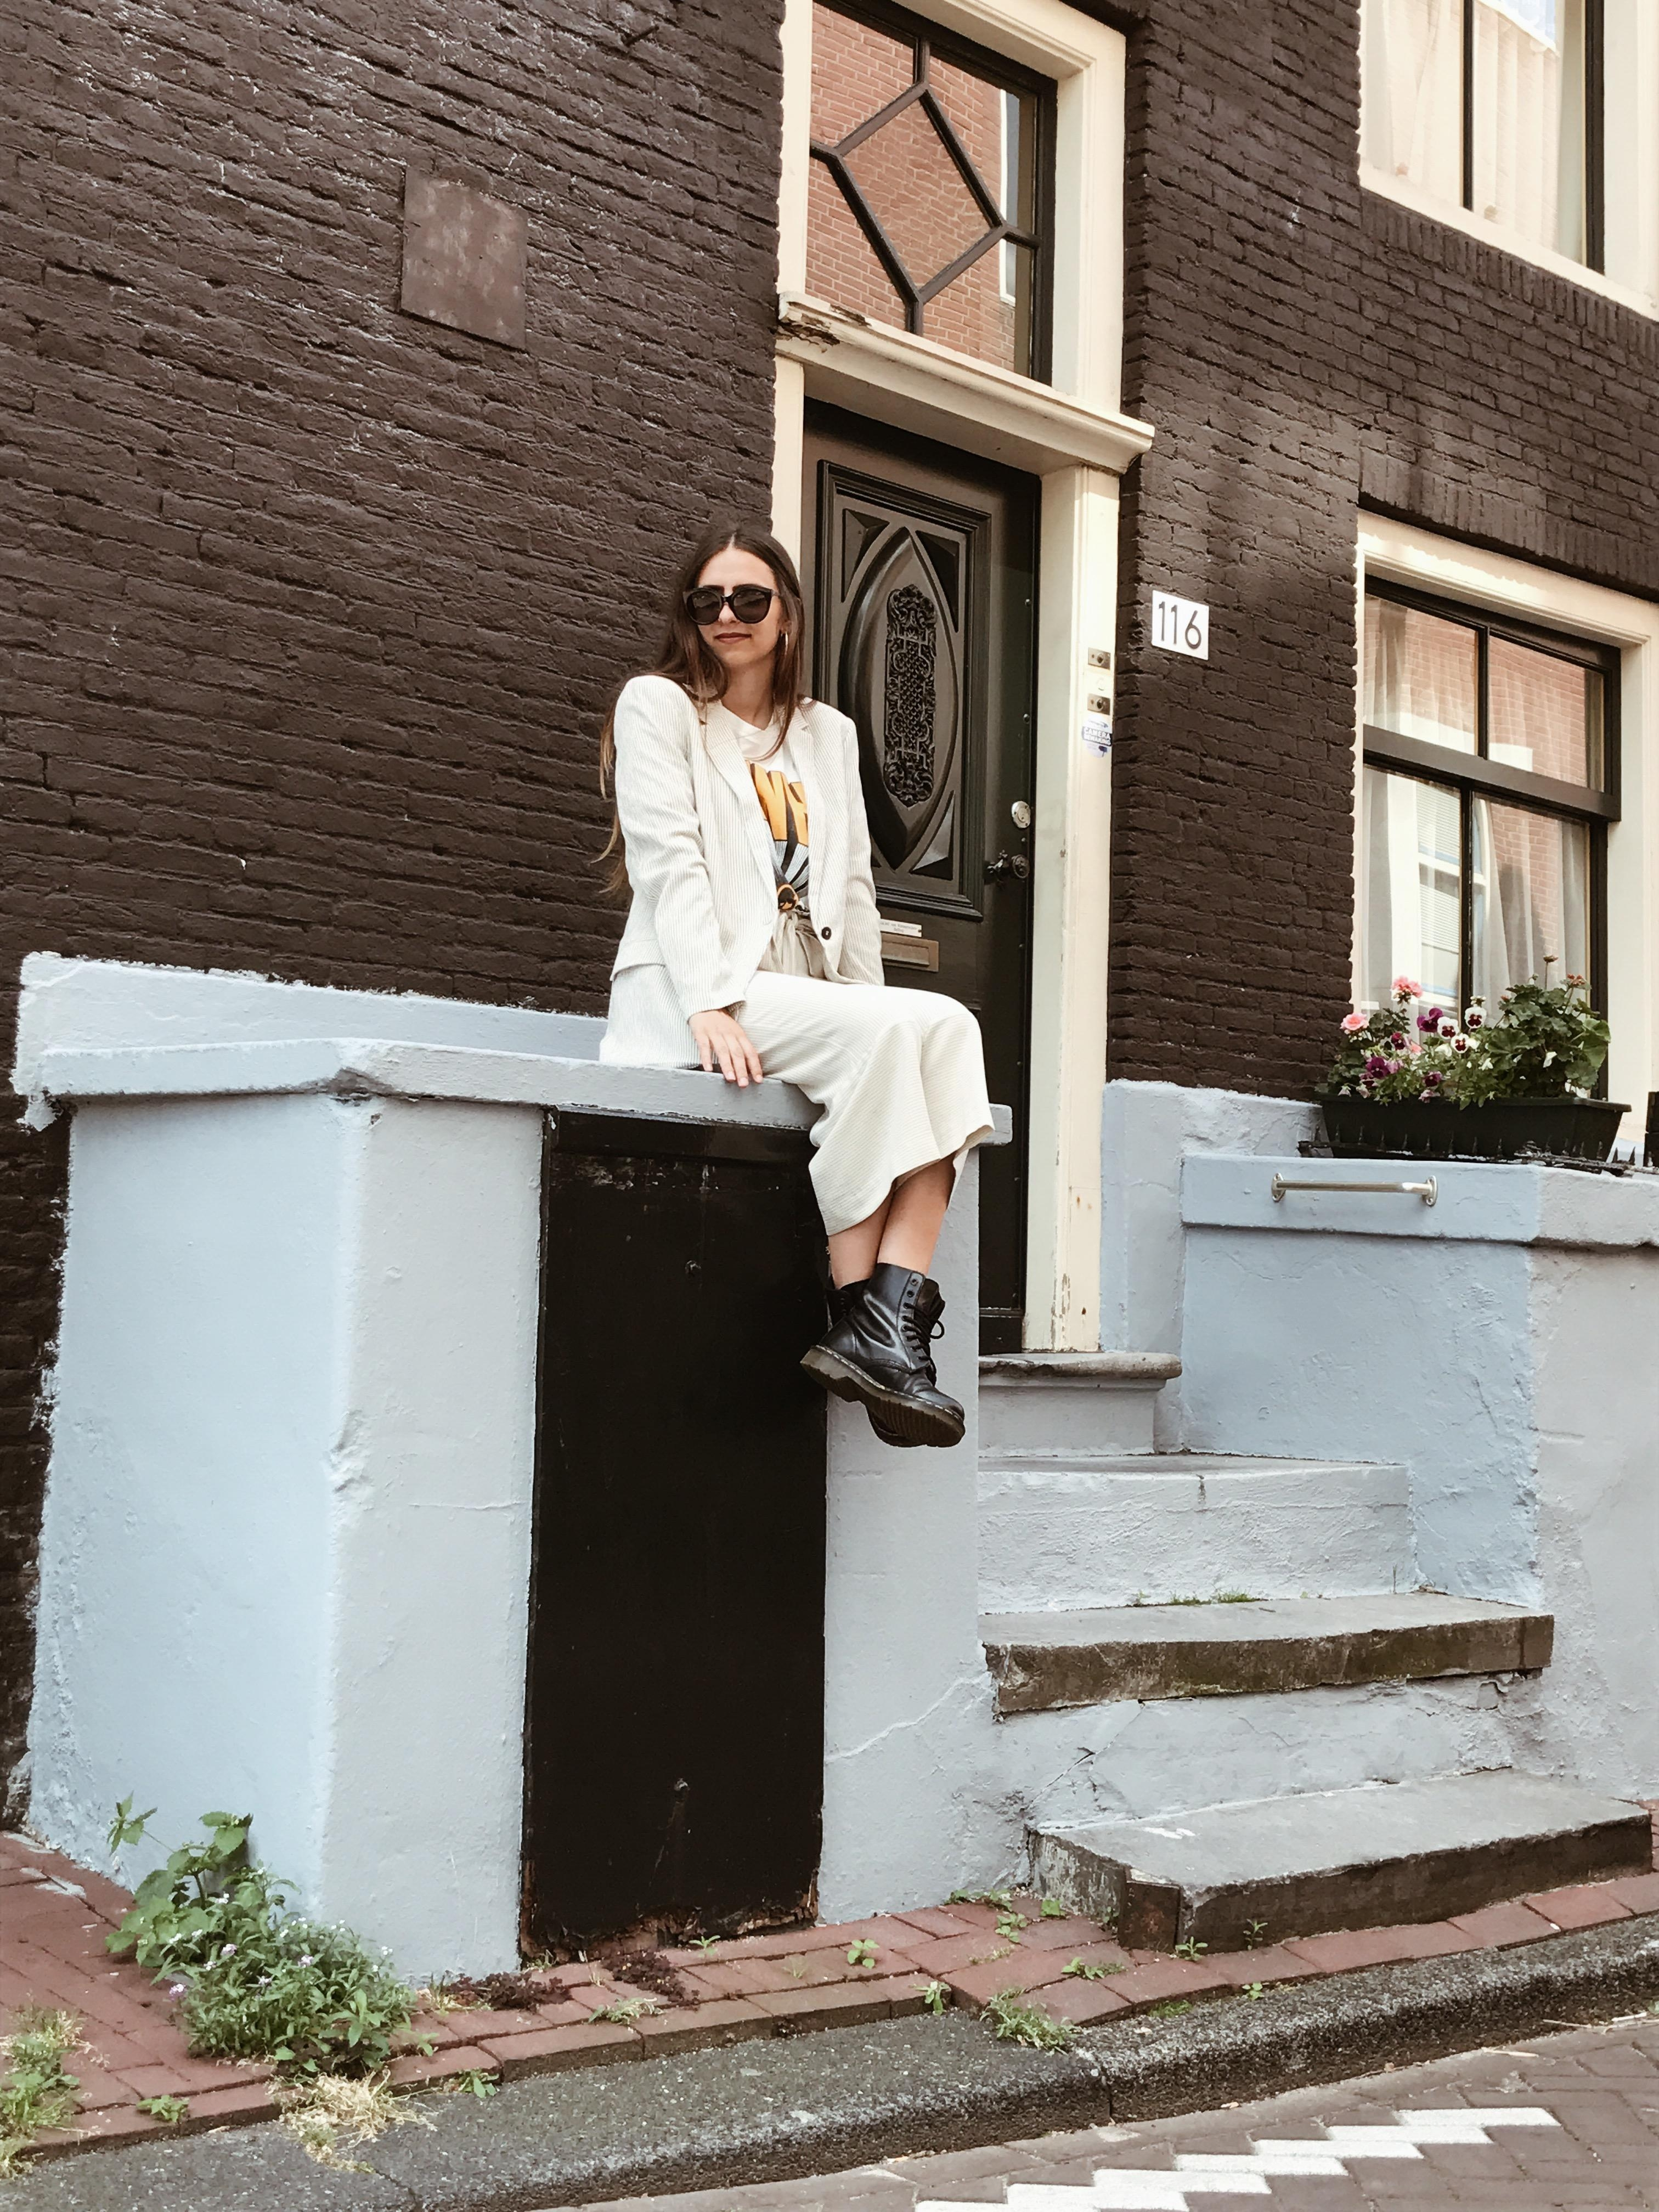 Absolute Amsterdamliebe! 